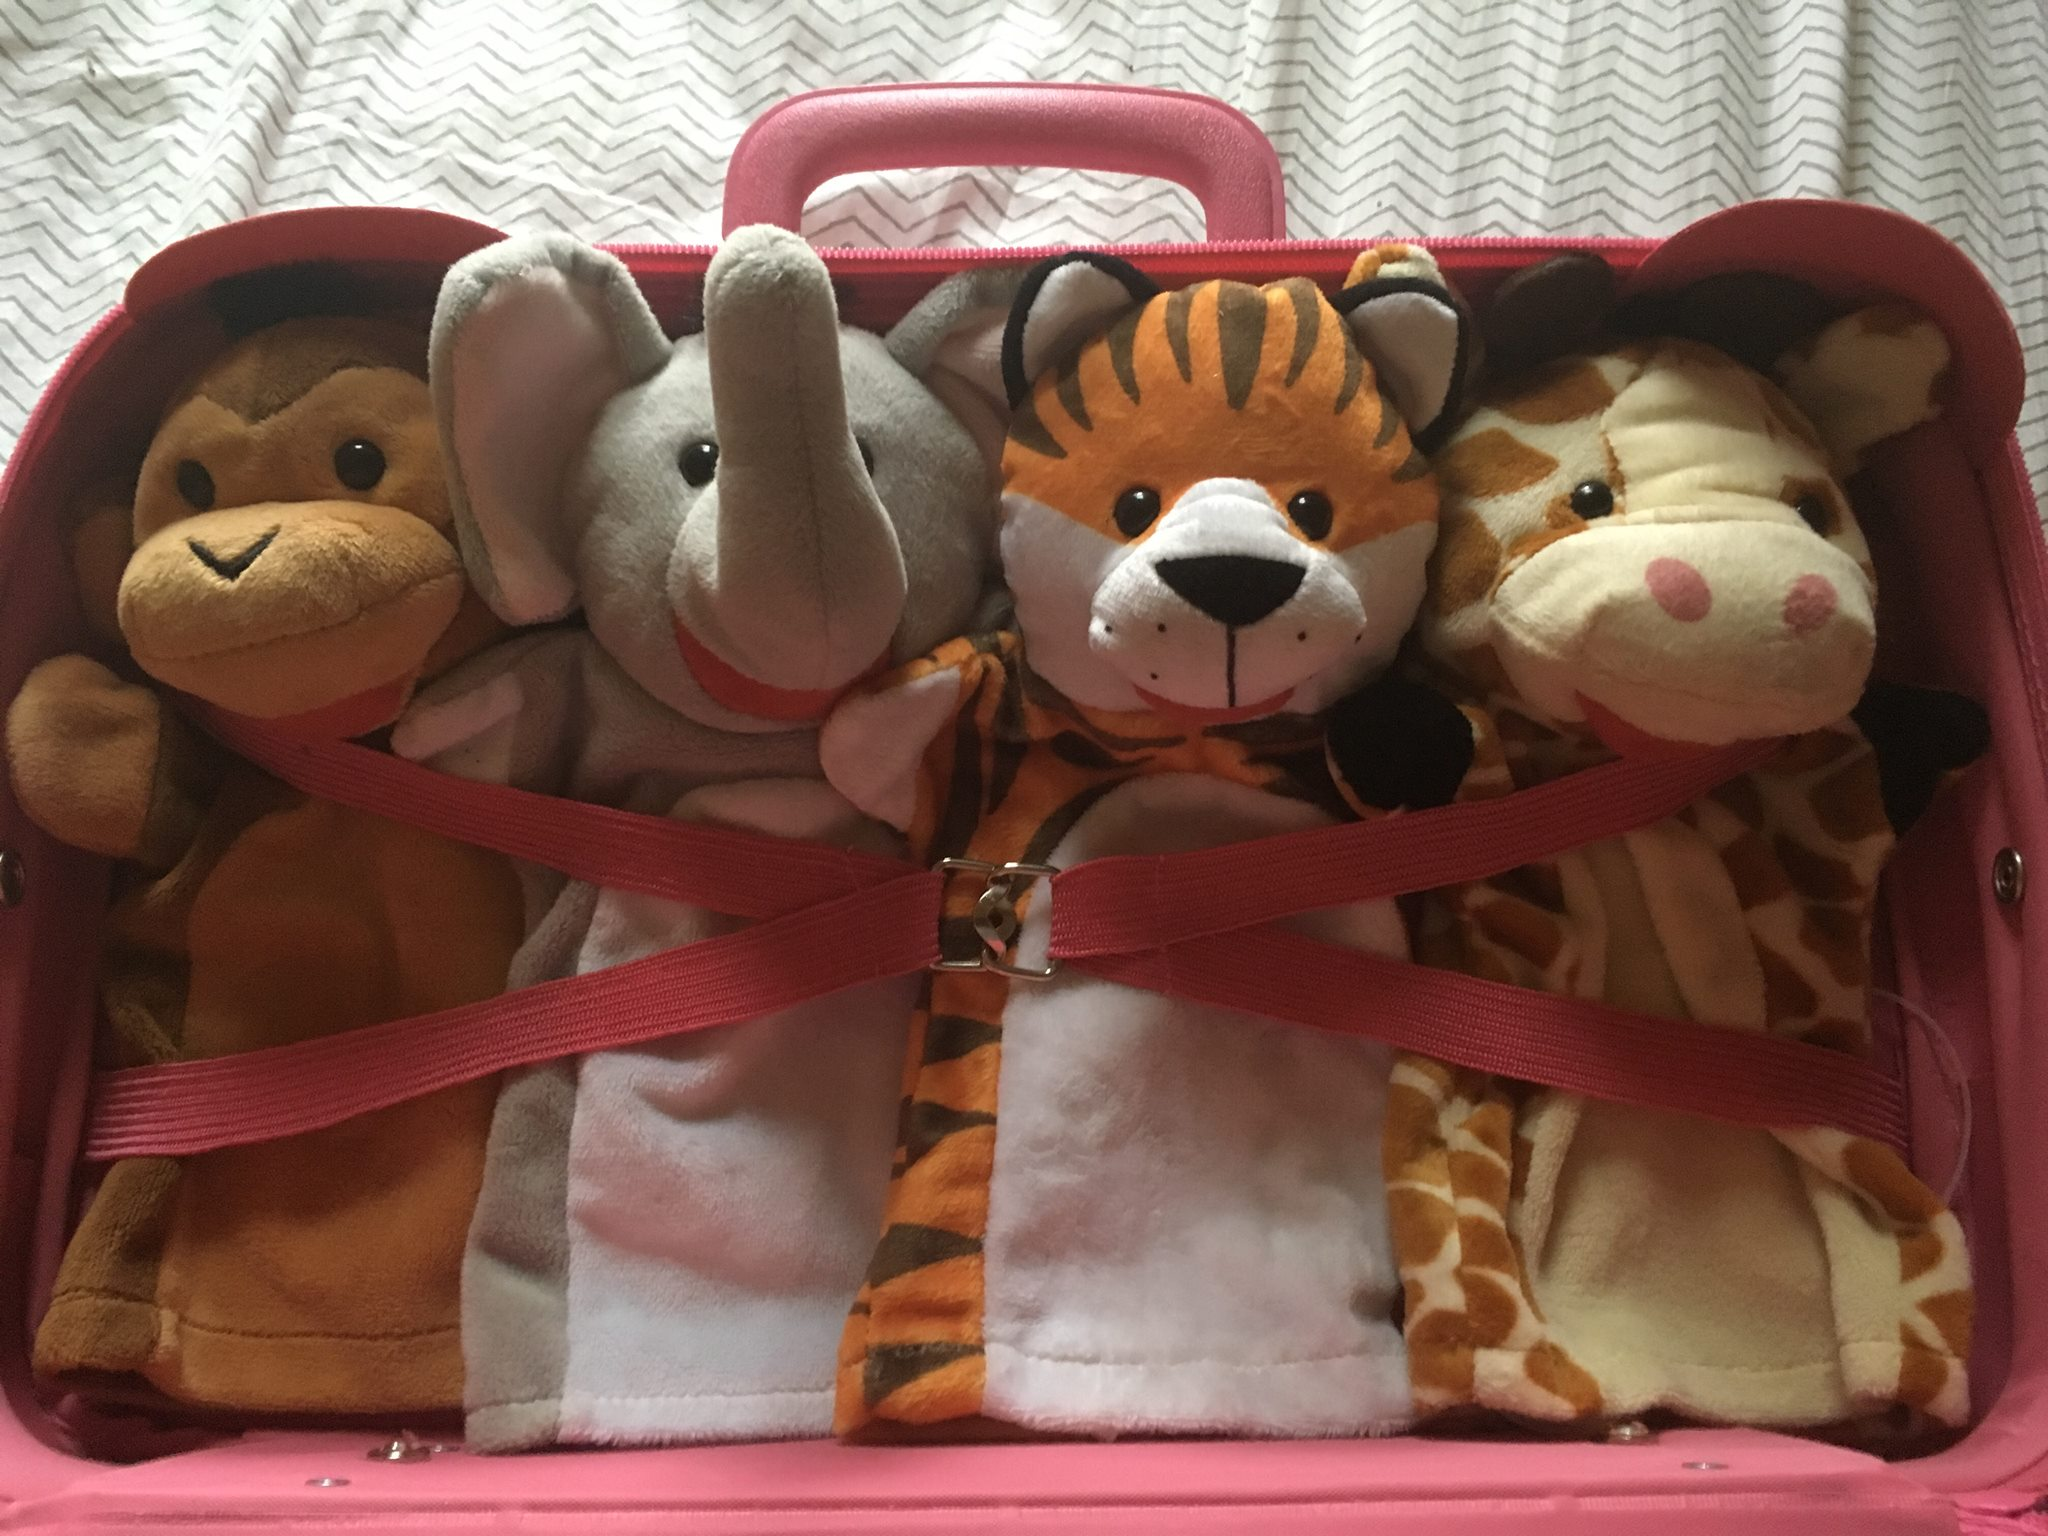 We're puppets that do improv! Danni the tiger, Blake the giraffe, Jo the elephant, and me, Charlie the monkey! Come snuggle up with Snuggleupagus!